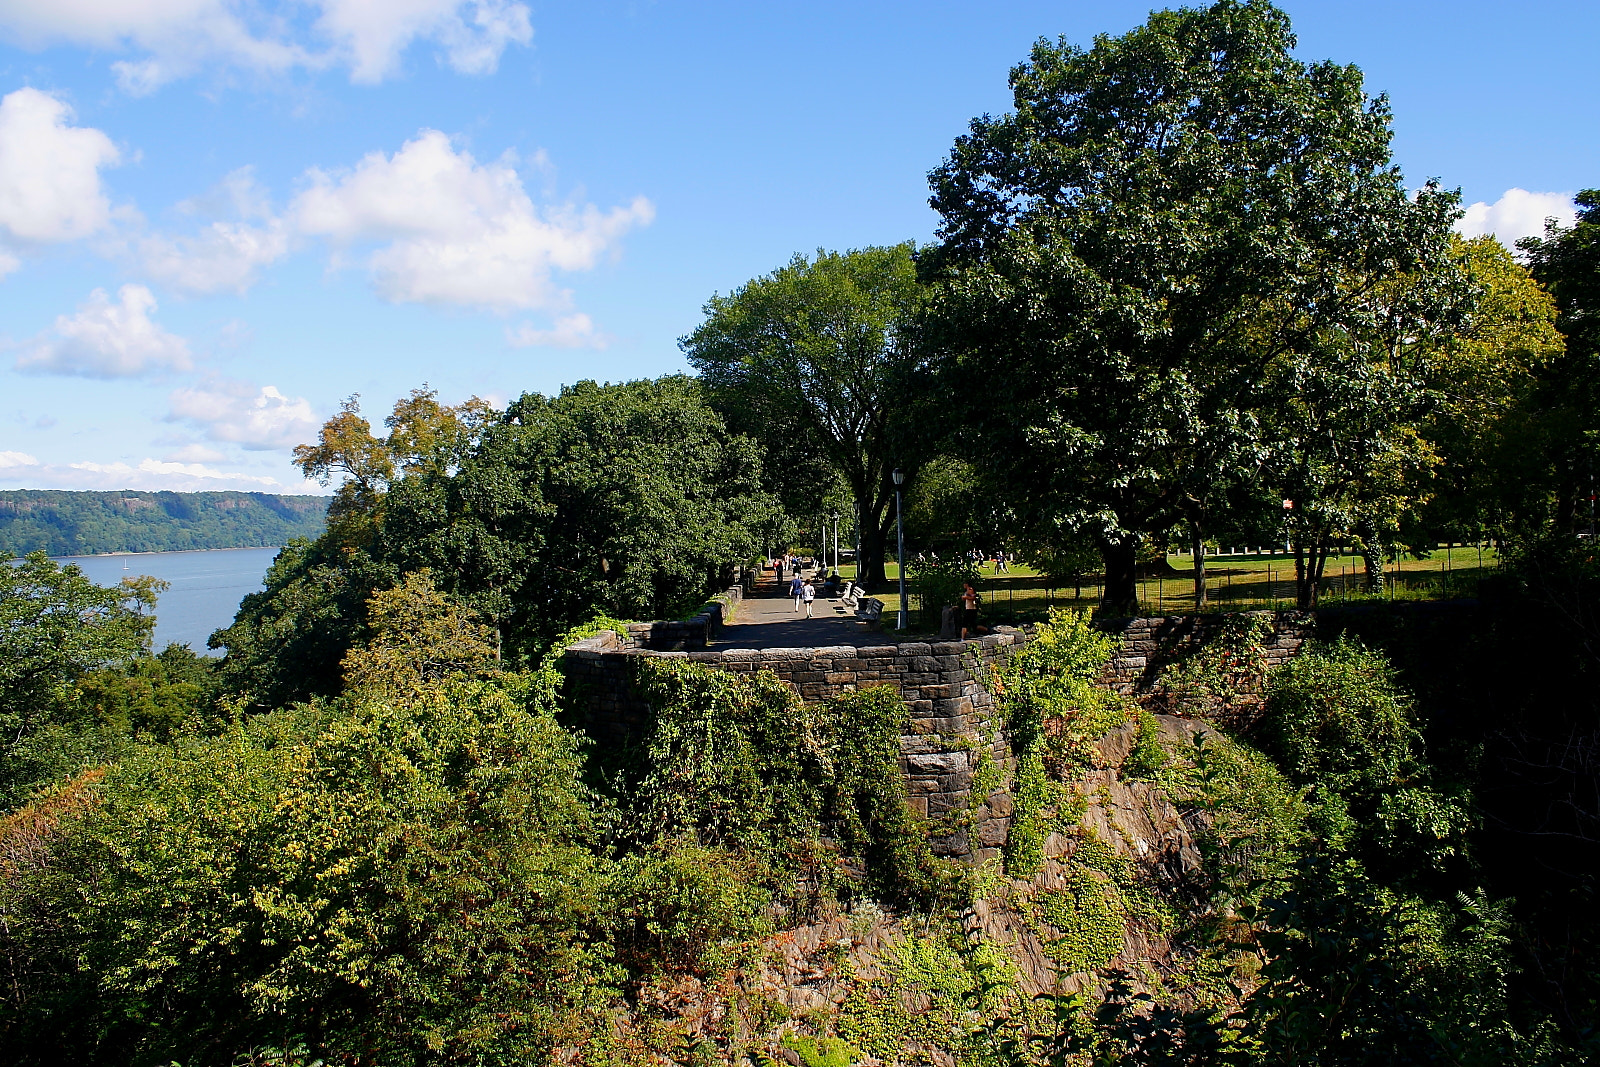 Photograph Fort Tryon Park Ledge by Nicholas Santasier on 500px